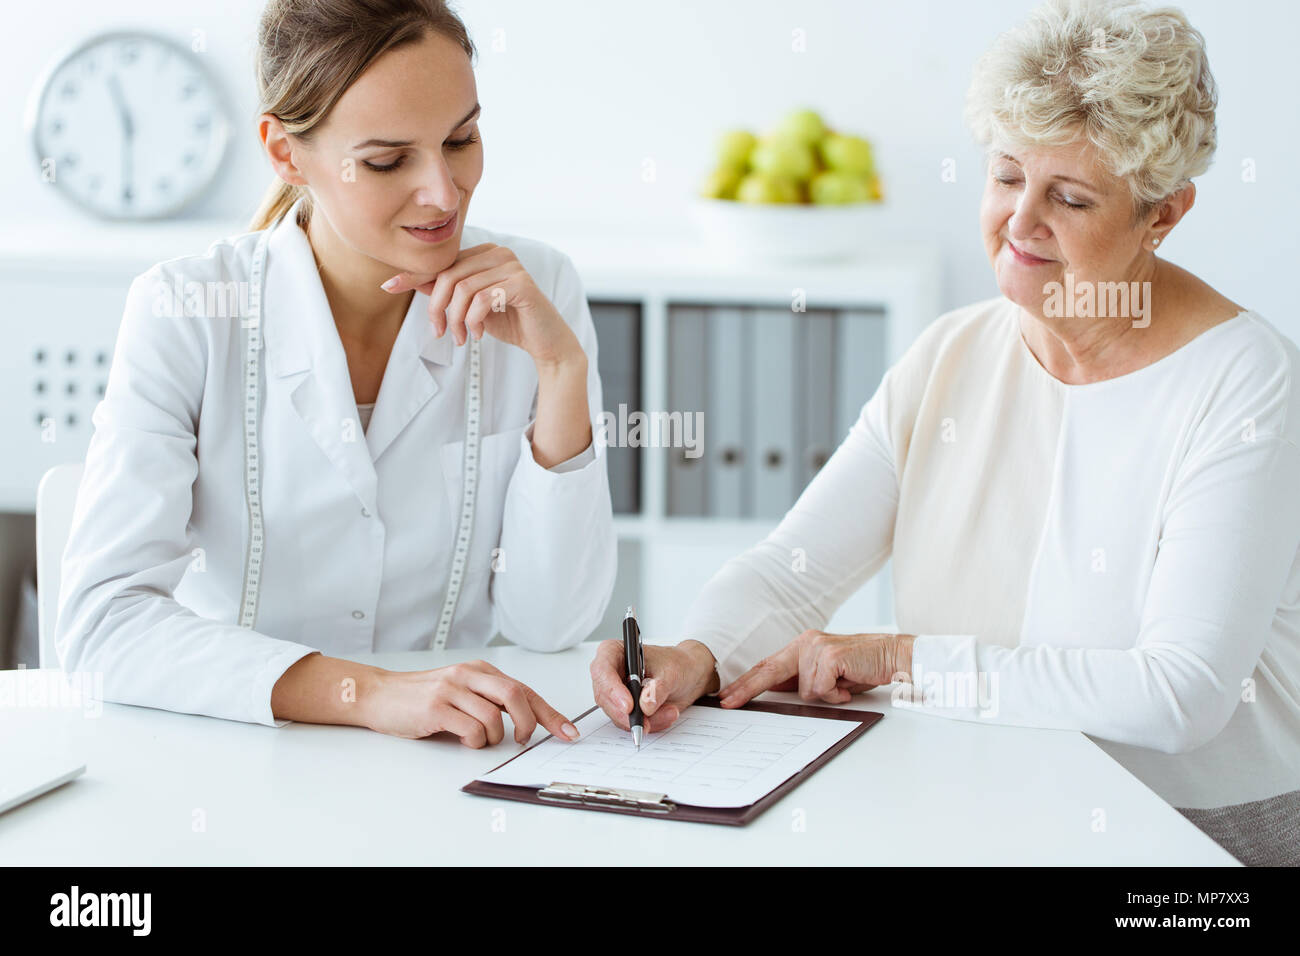 Dietician and diabetic patient with measure tape discussing daily healthy diet at the hospital - Stock Image